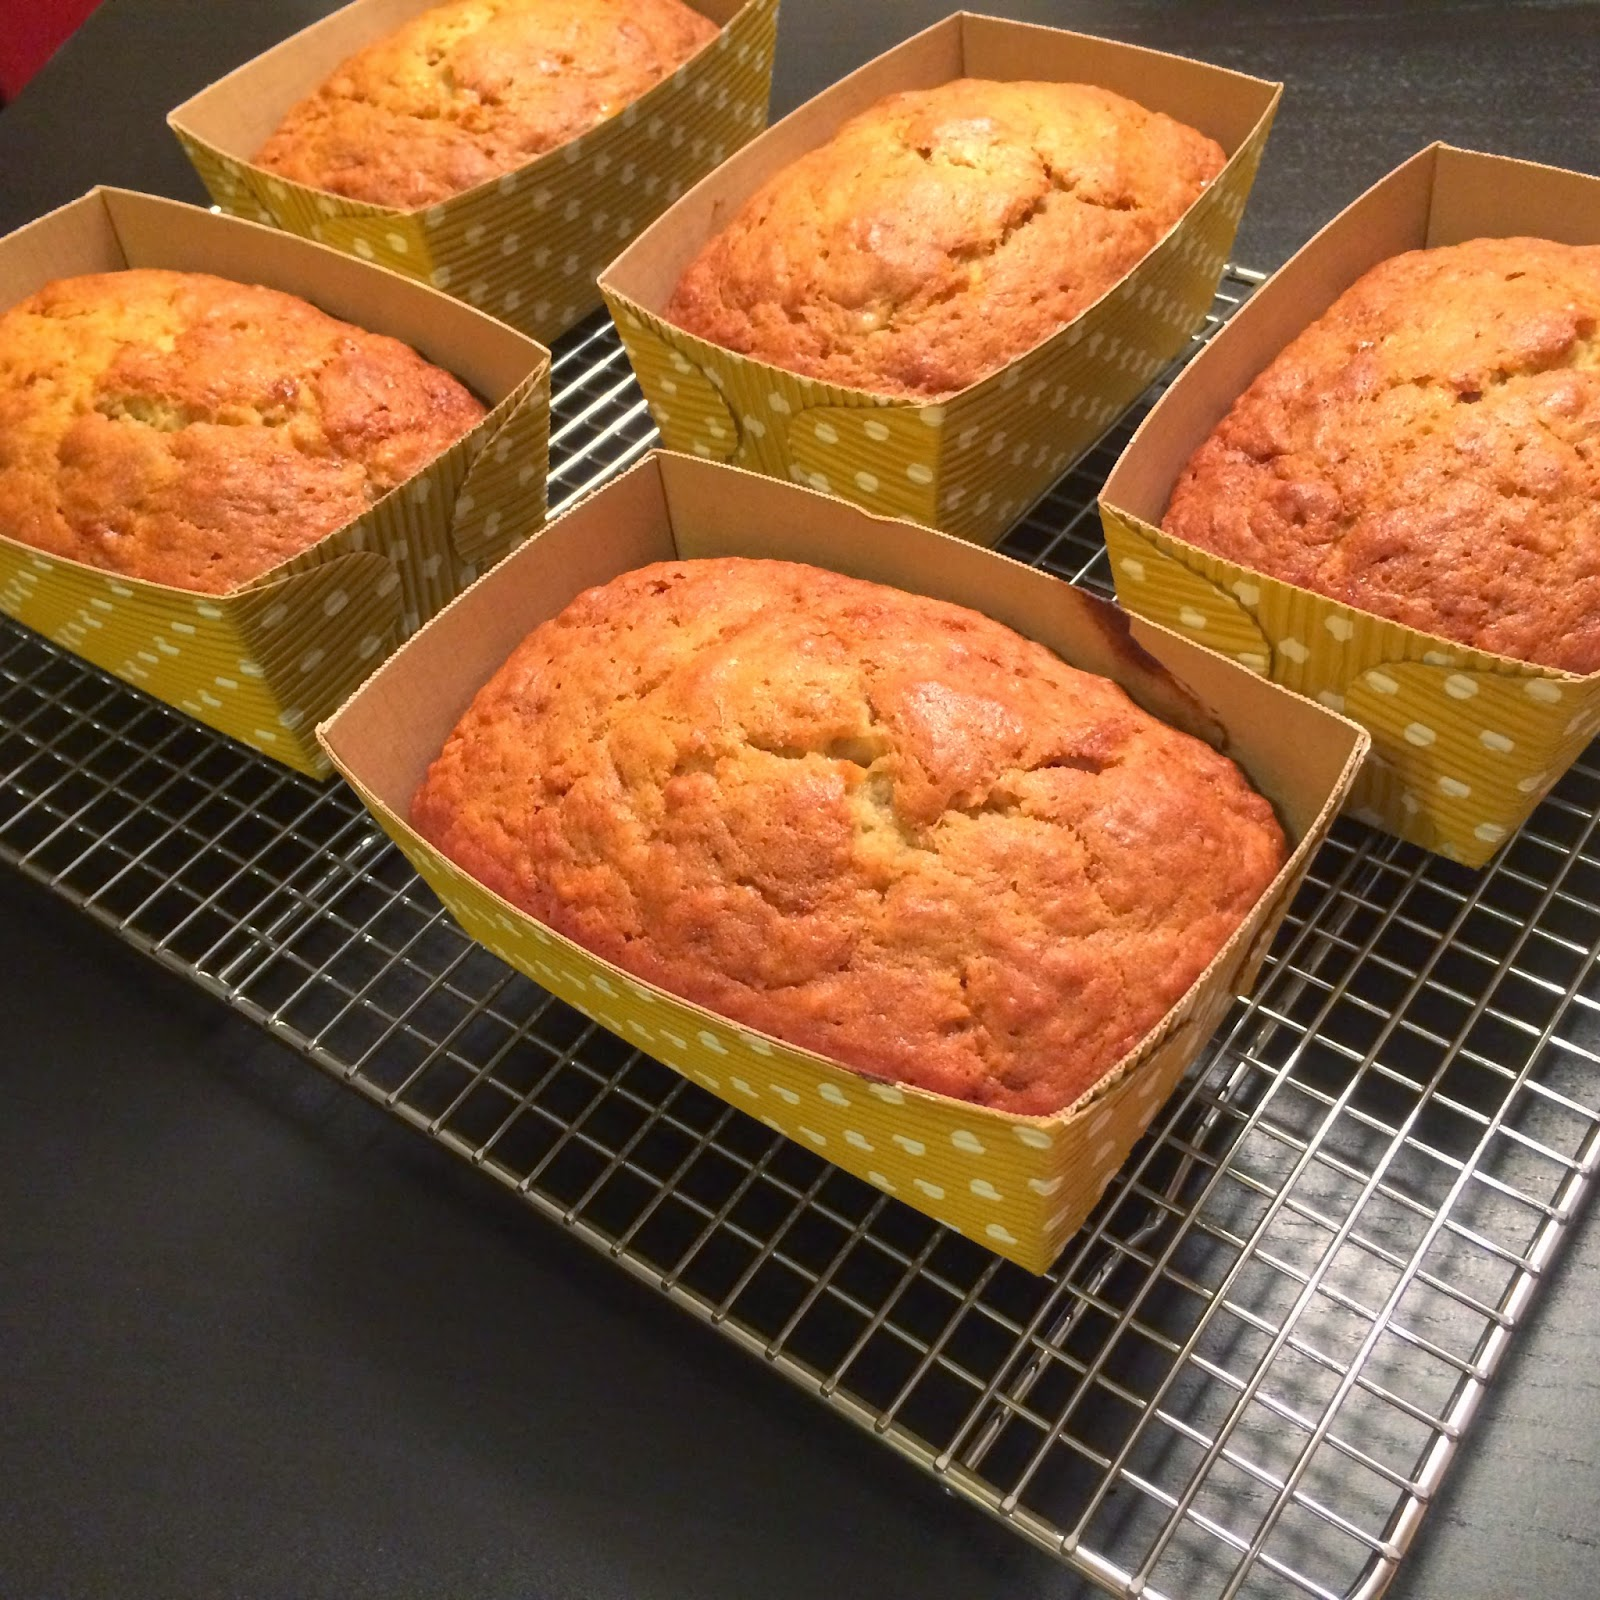 Mini bake in loaf pans, prefect for gifts! The Graffitied Gardenia blog